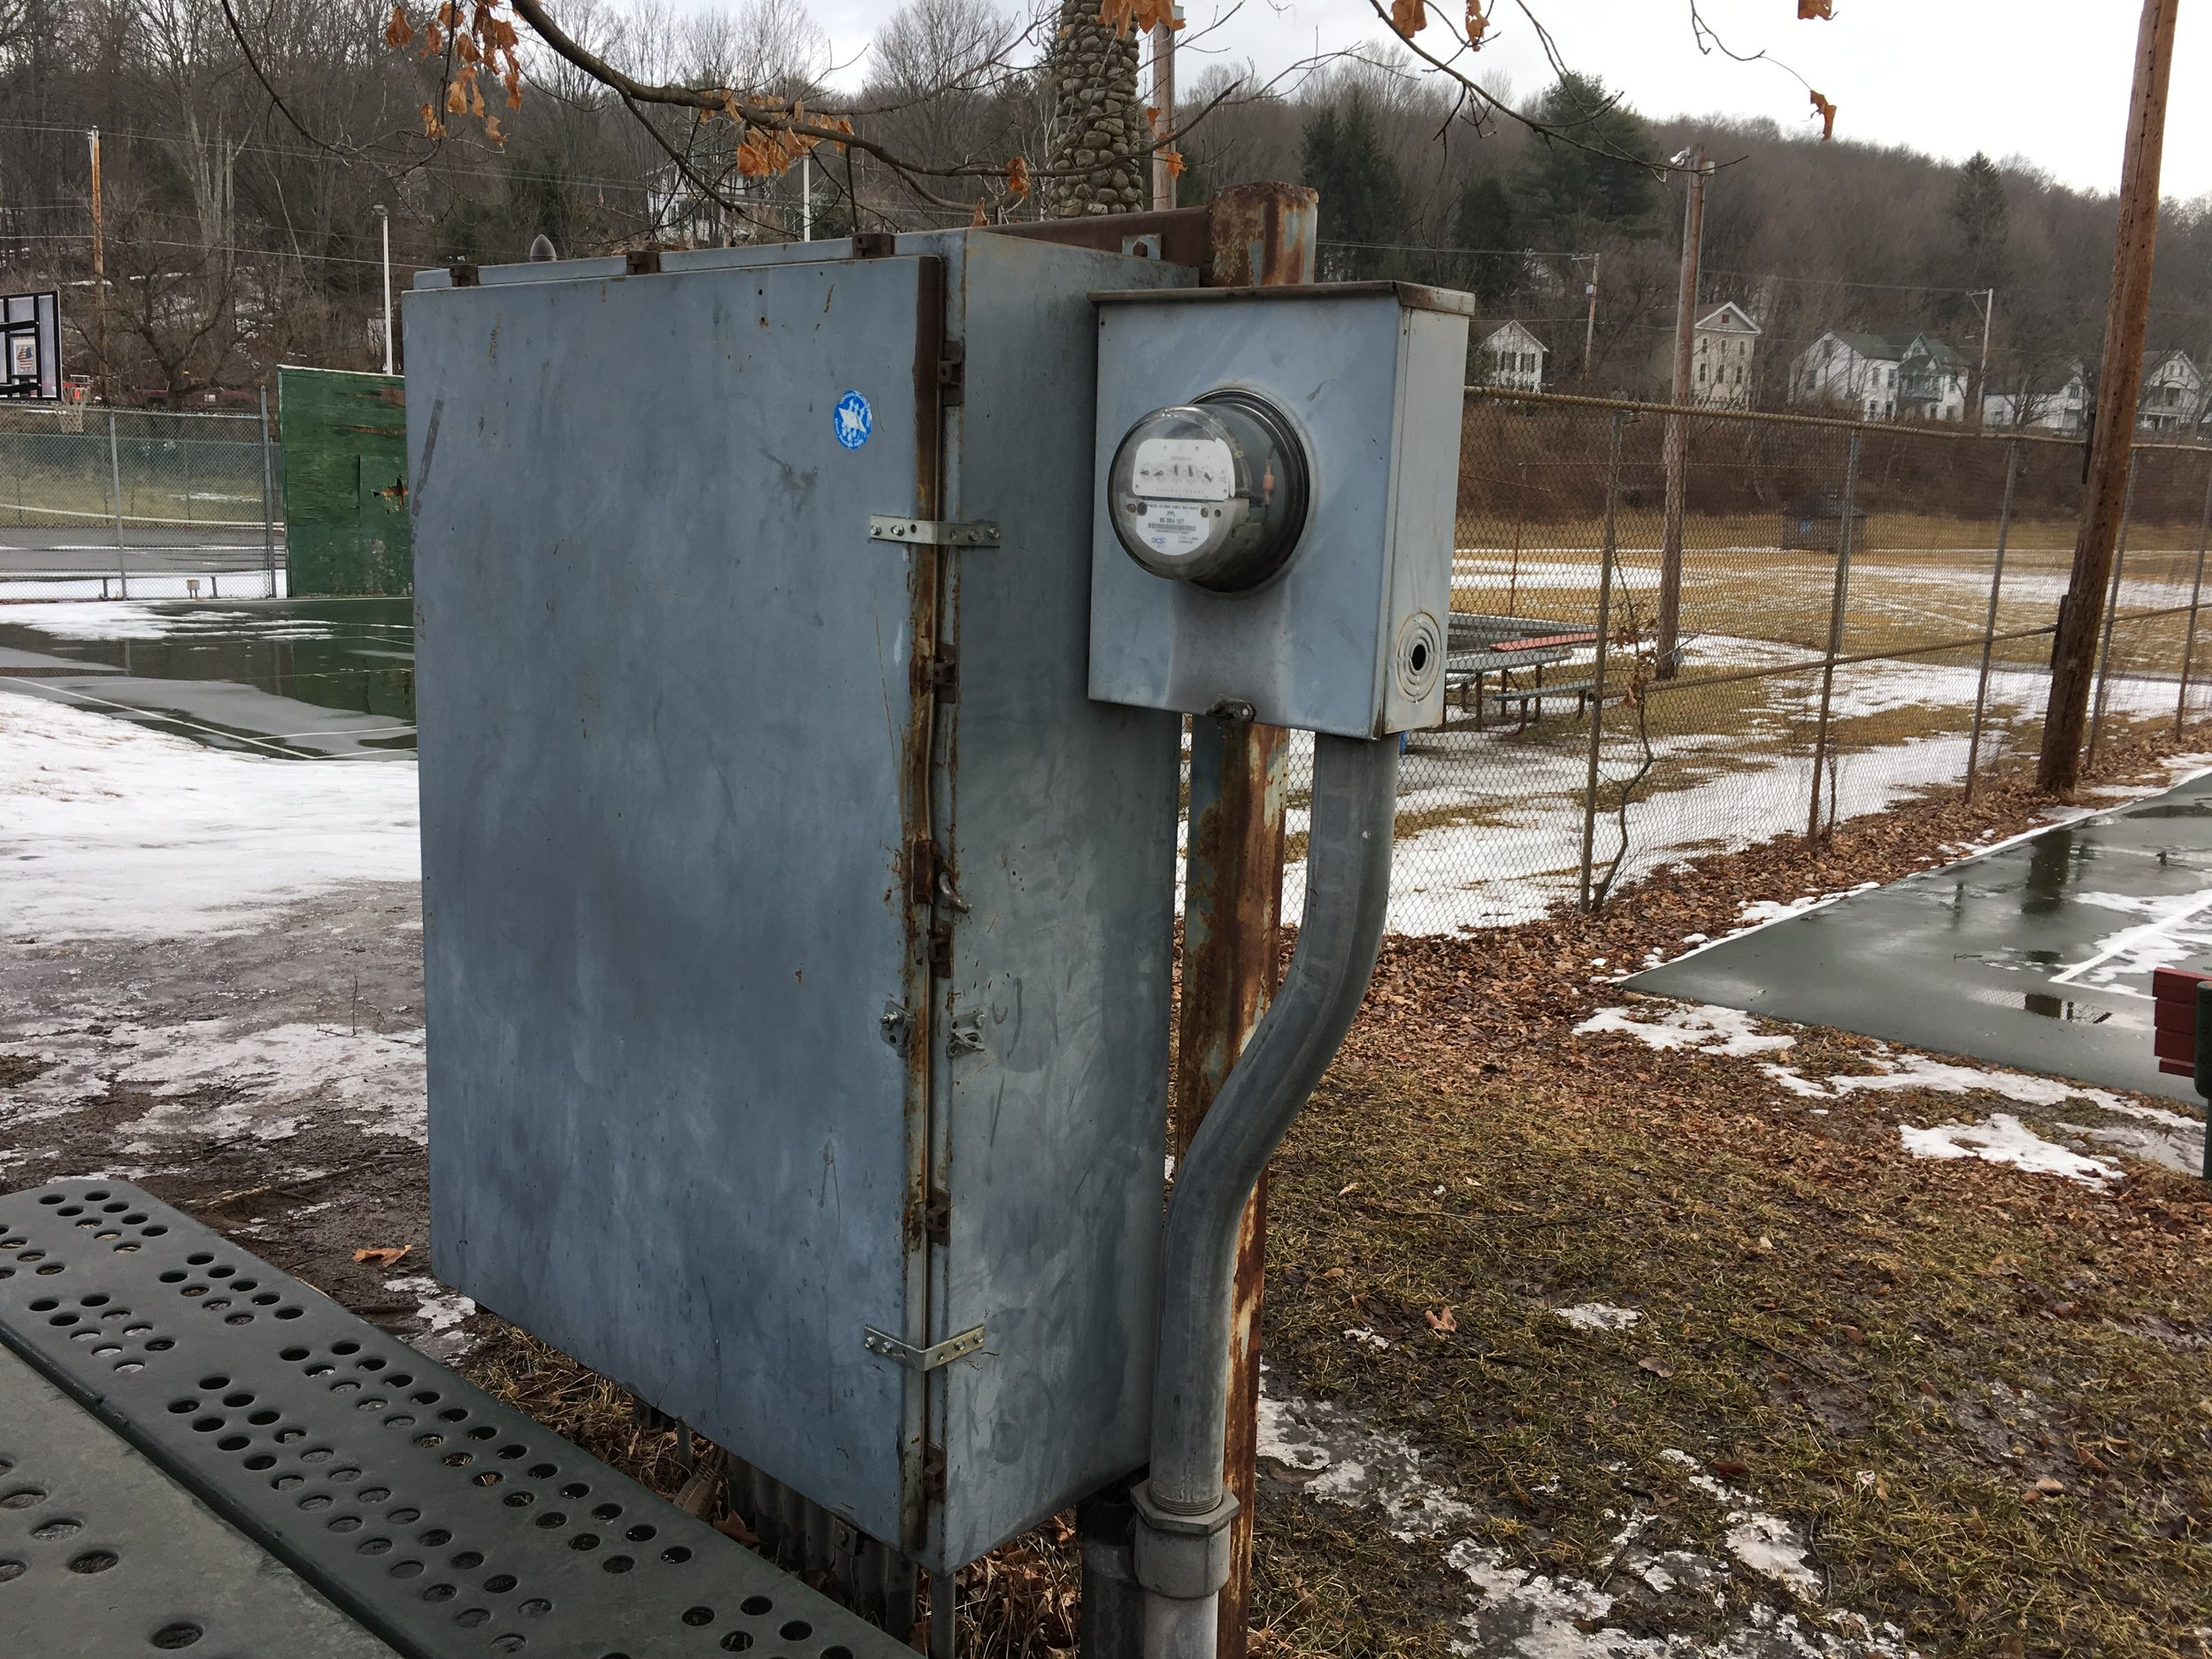 Current Condition - Electric Box is not tamper-proof